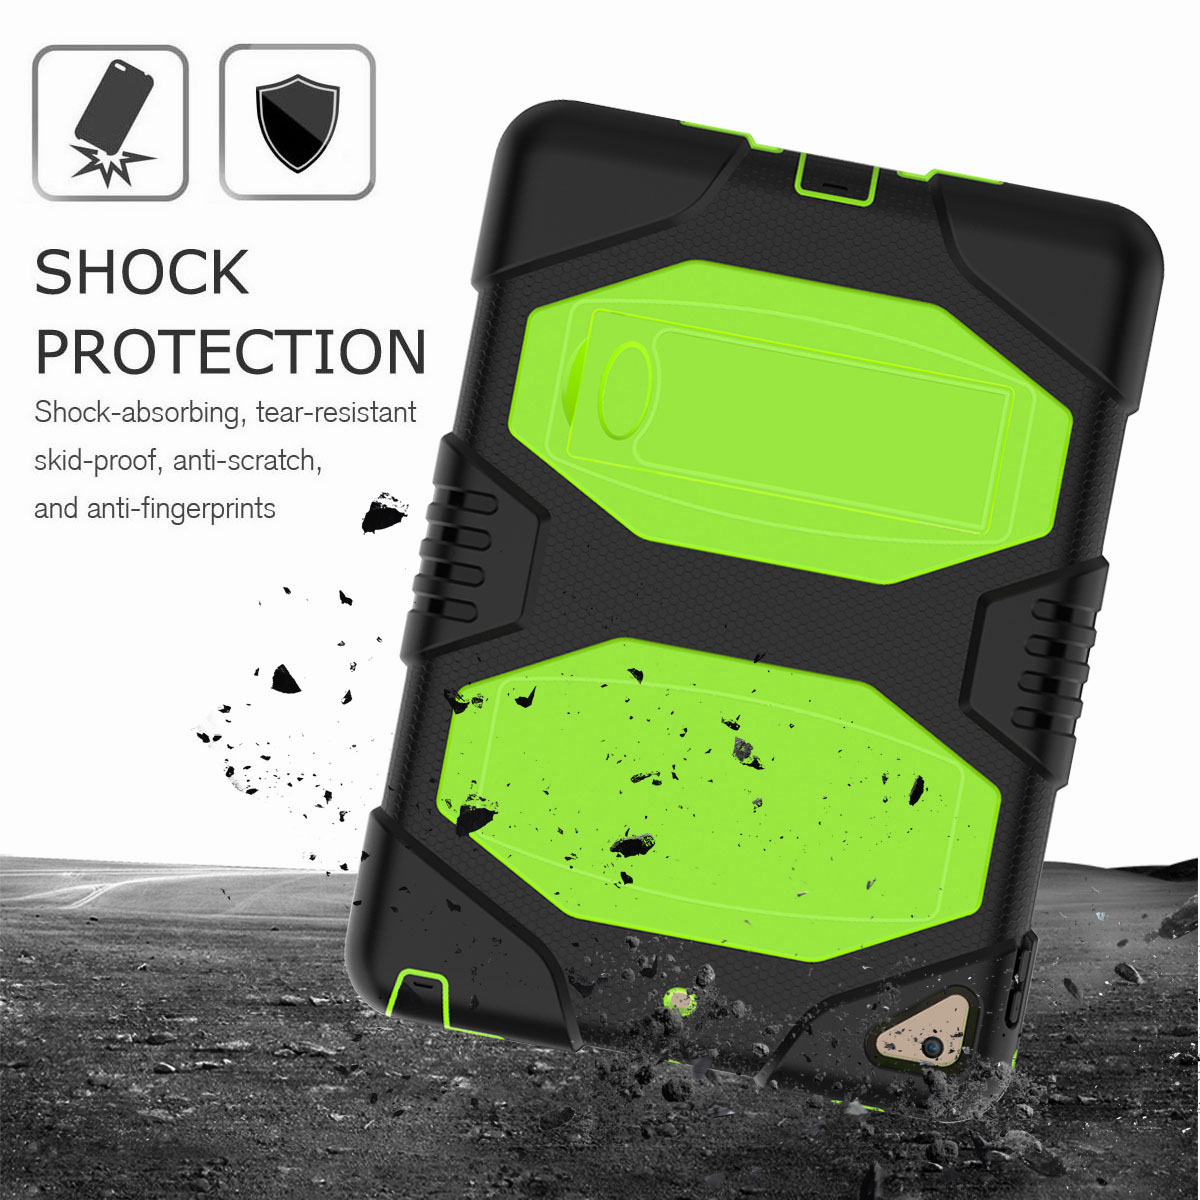 Hybrid-Rubber-Heavy-Duty-Shockproof-Case-Cover-For-iPad-9-7-6th-Generation-2018 thumbnail 24